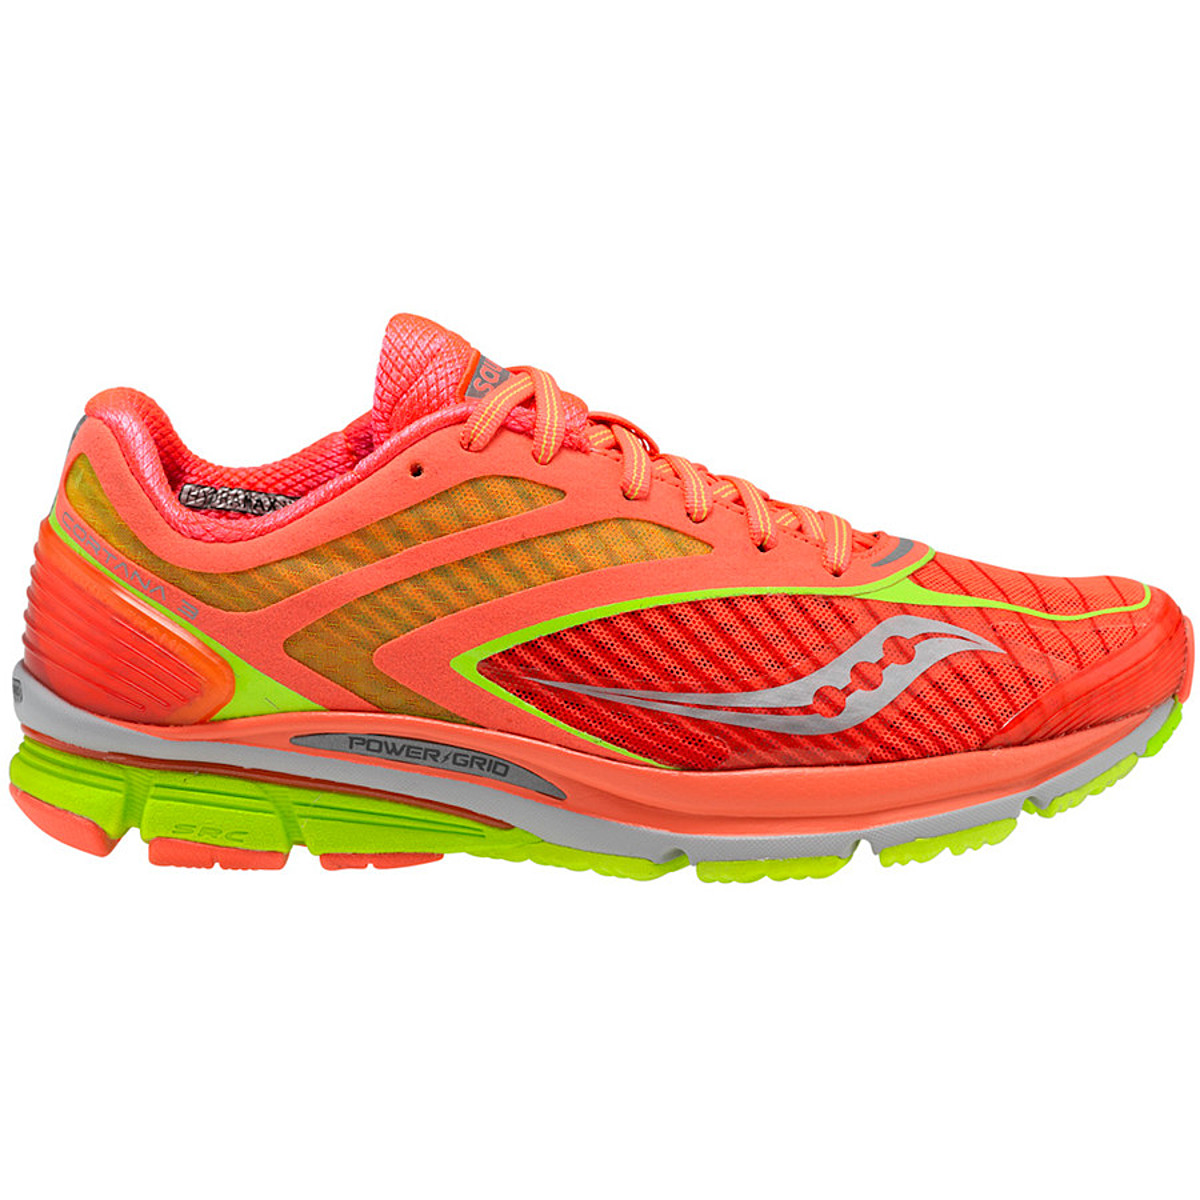 photo: Saucony Women's PowerGrid Cortana 3 barefoot / minimal shoe